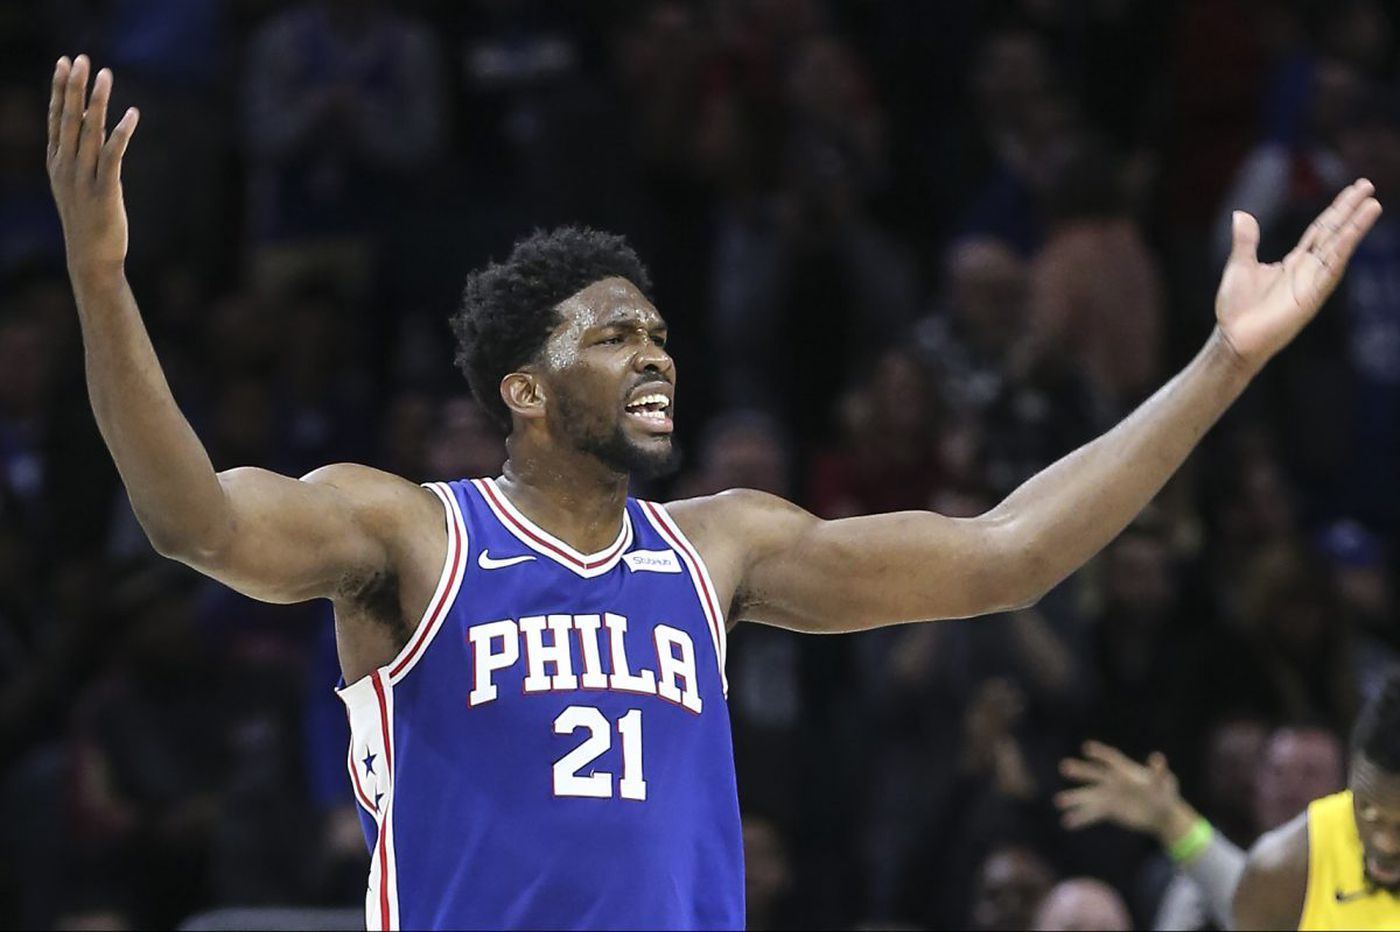 Joel Embiid questionable for Sixers-Thunder due to back tightness